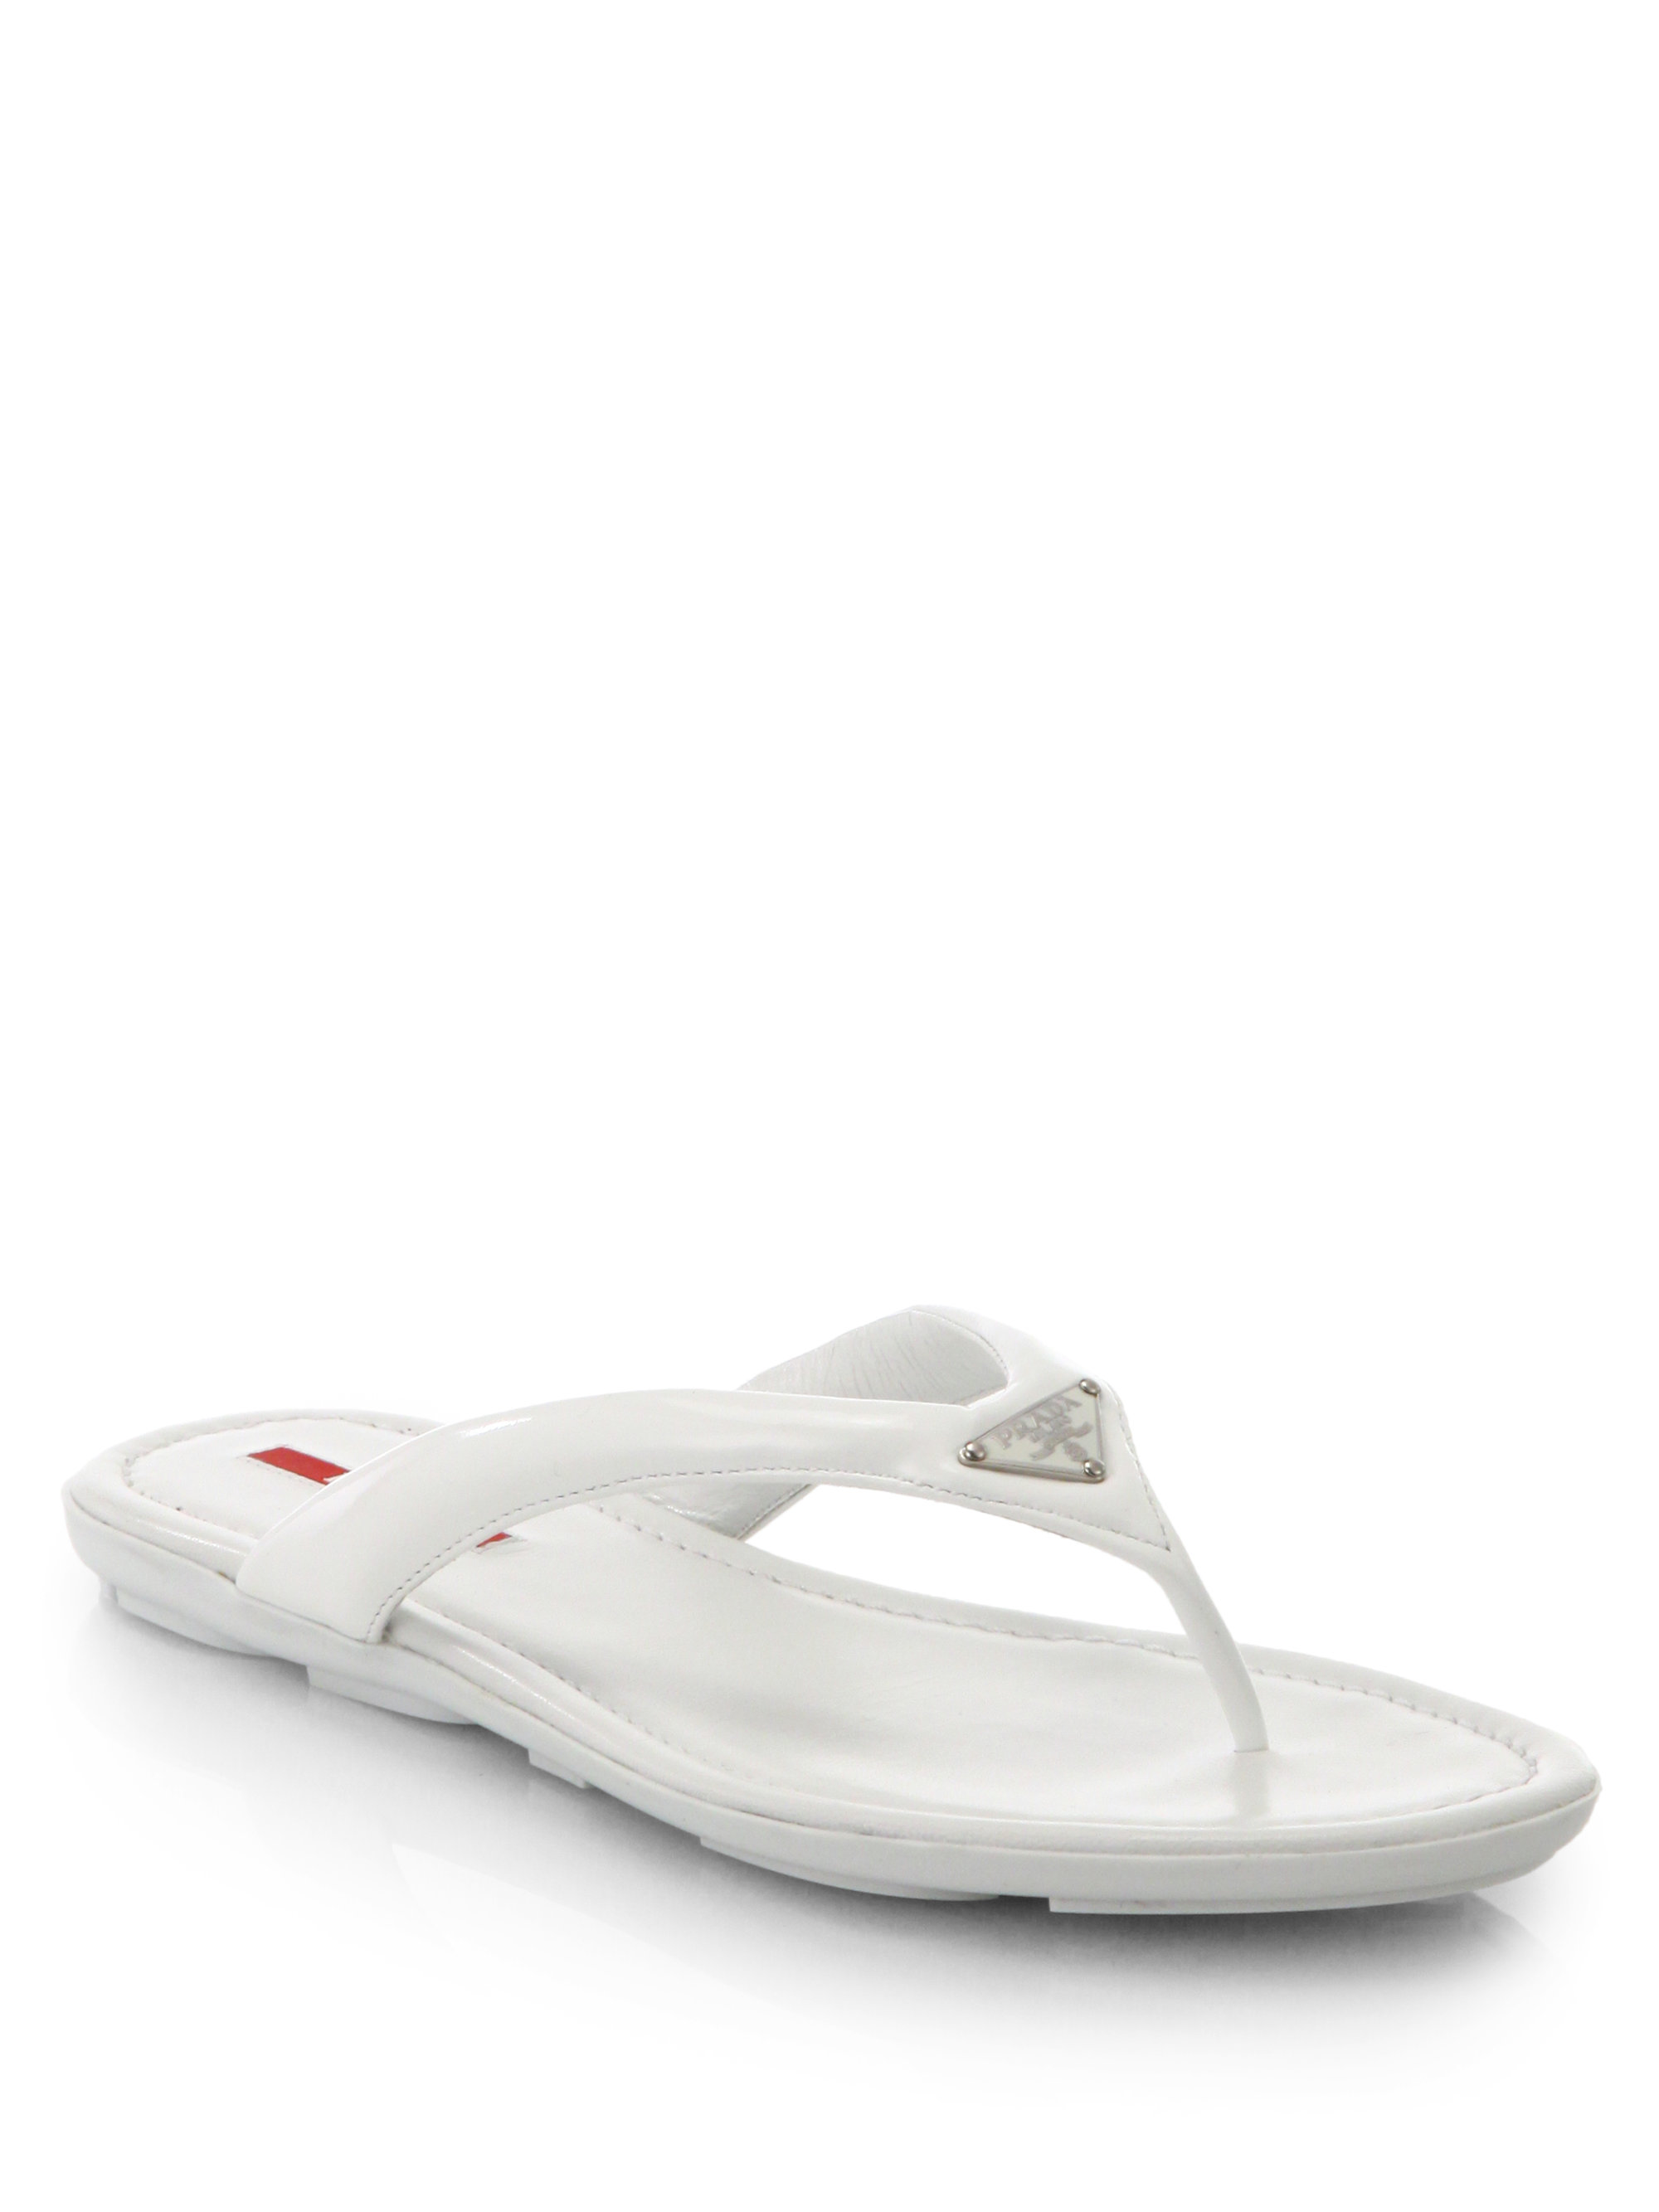 04a750b989c0 Prada Patent Leather Thong Sandals in White - Lyst